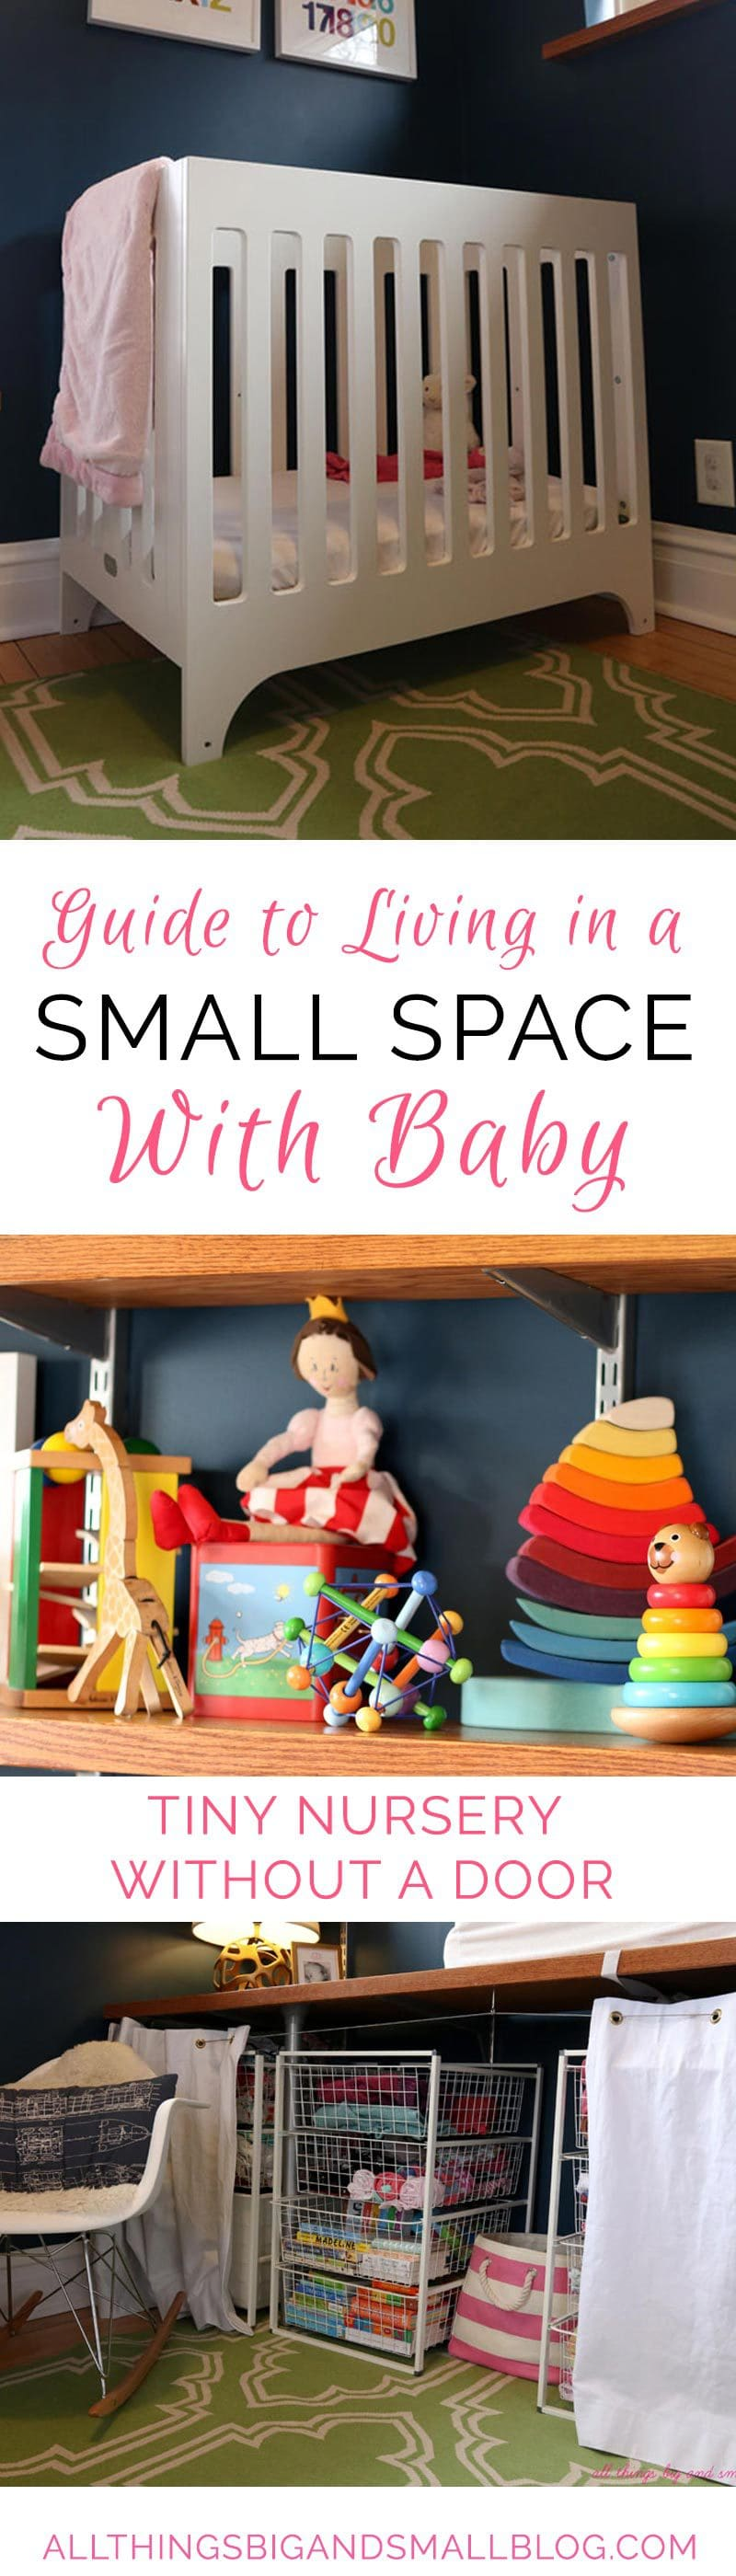 how to live in a small space with kids small space with baby small - How To Live In Small Spaces